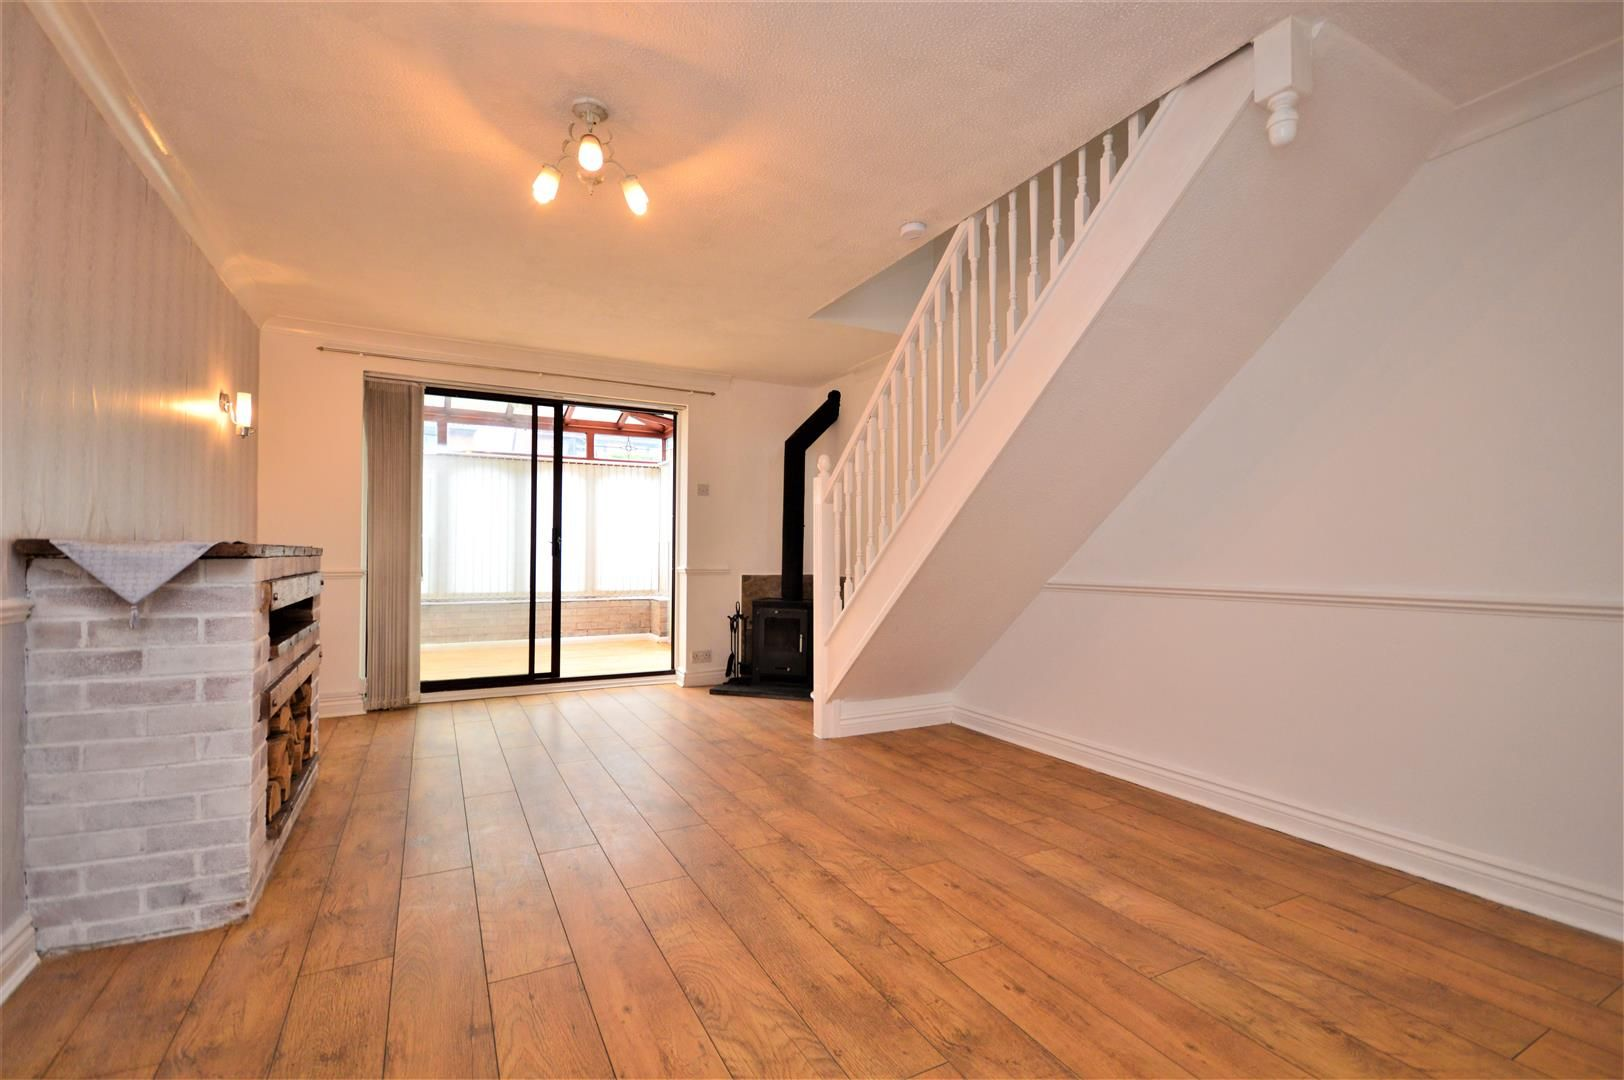 2 bed end-of-terrace for sale in Belmont  - Property Image 4